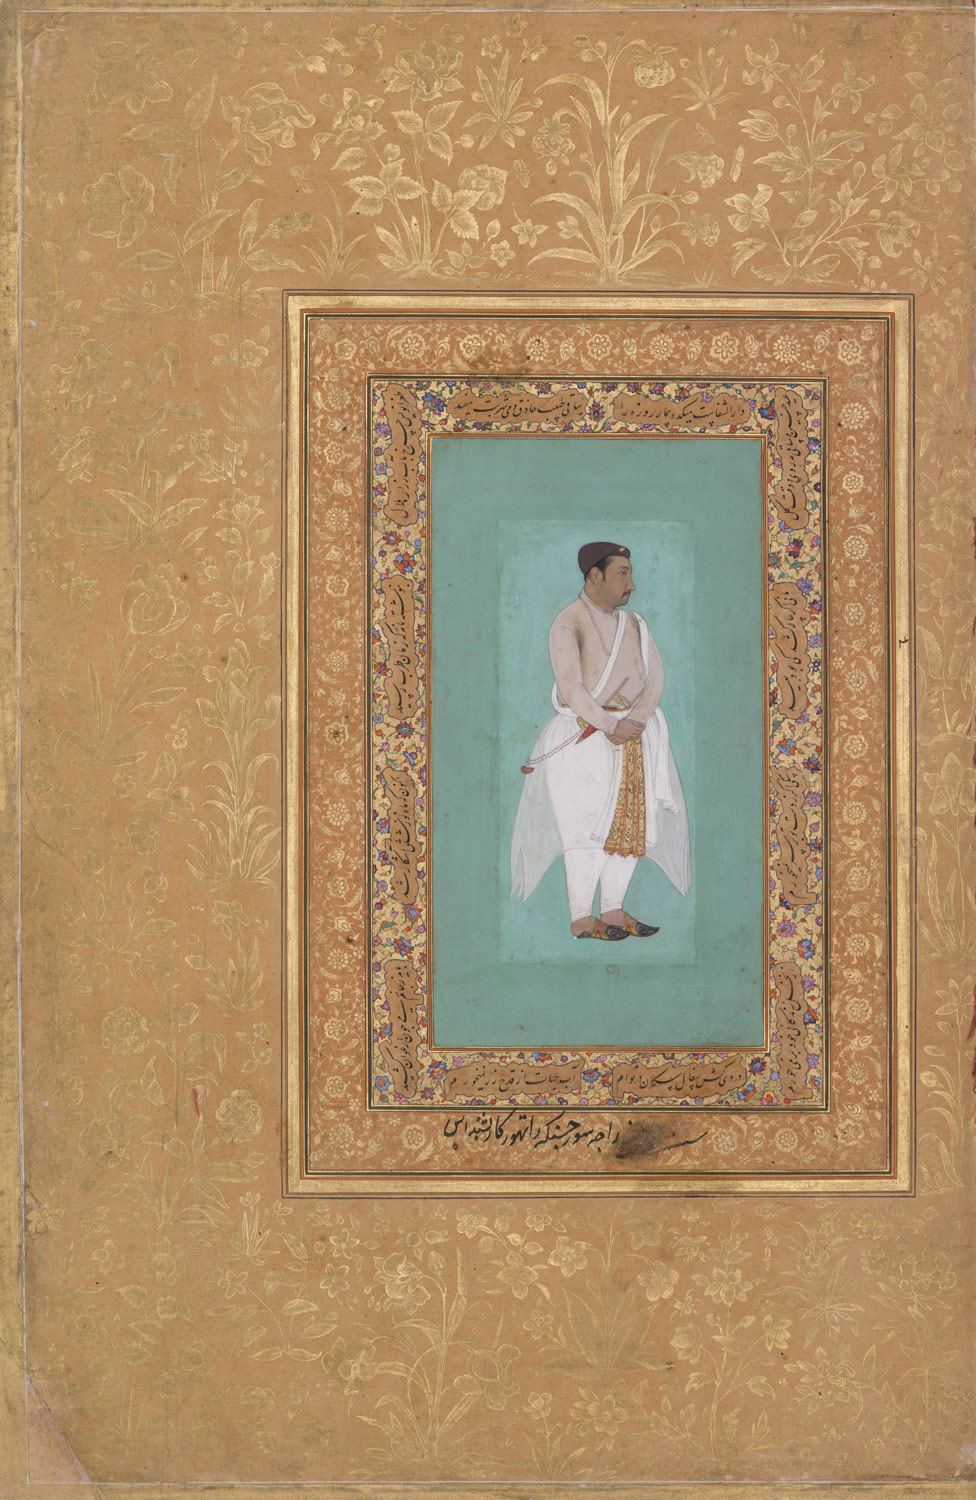 recto: Portrait of Raja Suraj Singh Rathor, verso: Page of Calligraphy. Folio from the Shah Jahan Album